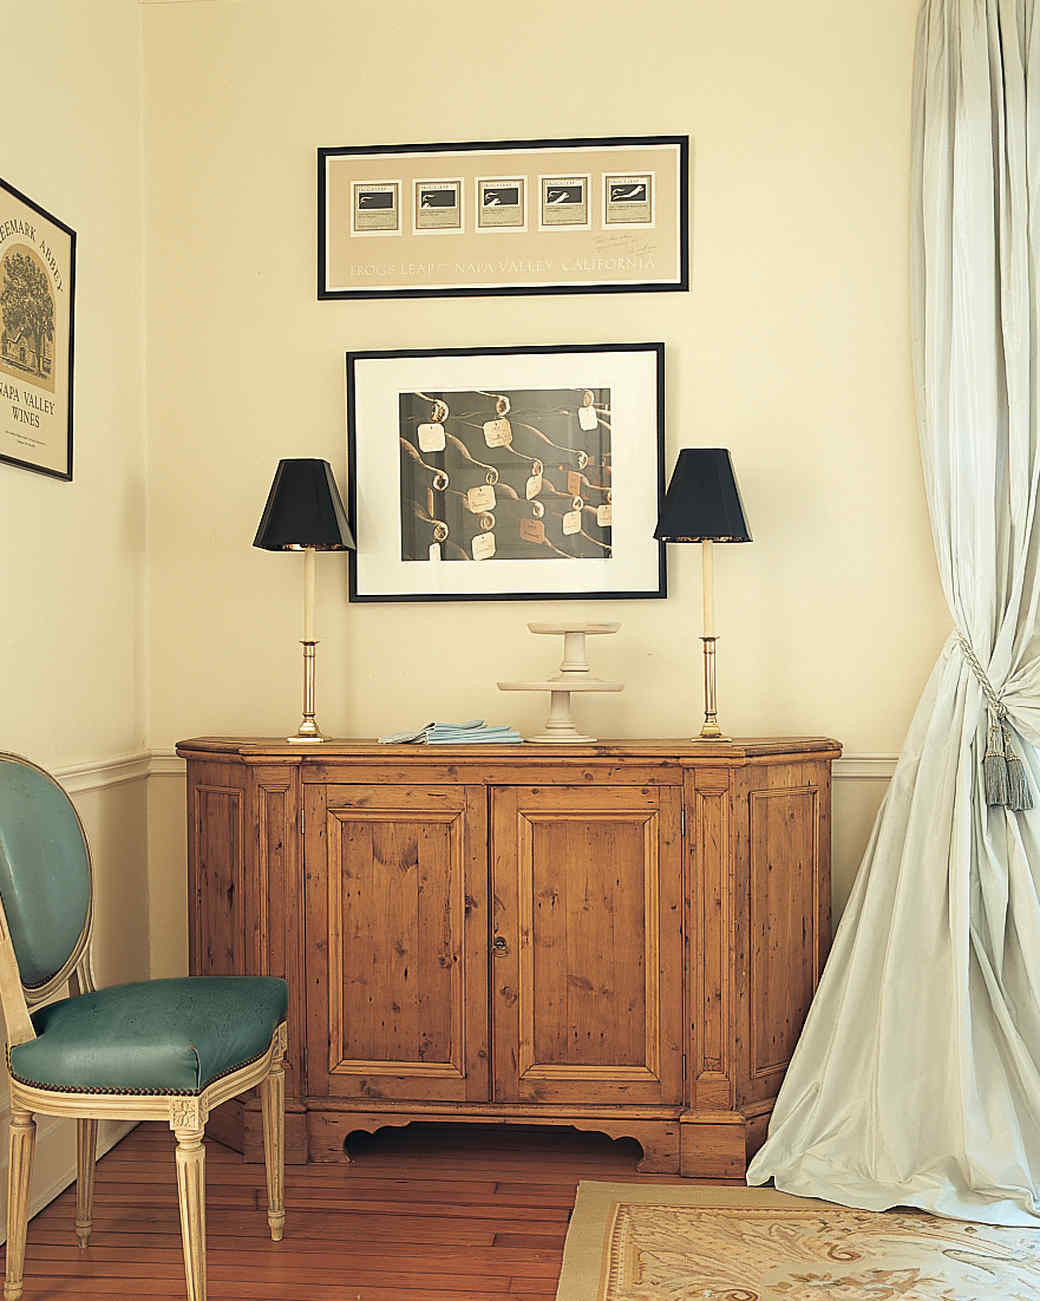 A Dining Room Transformed: See How 5 Little Design Ideas Gave This ...